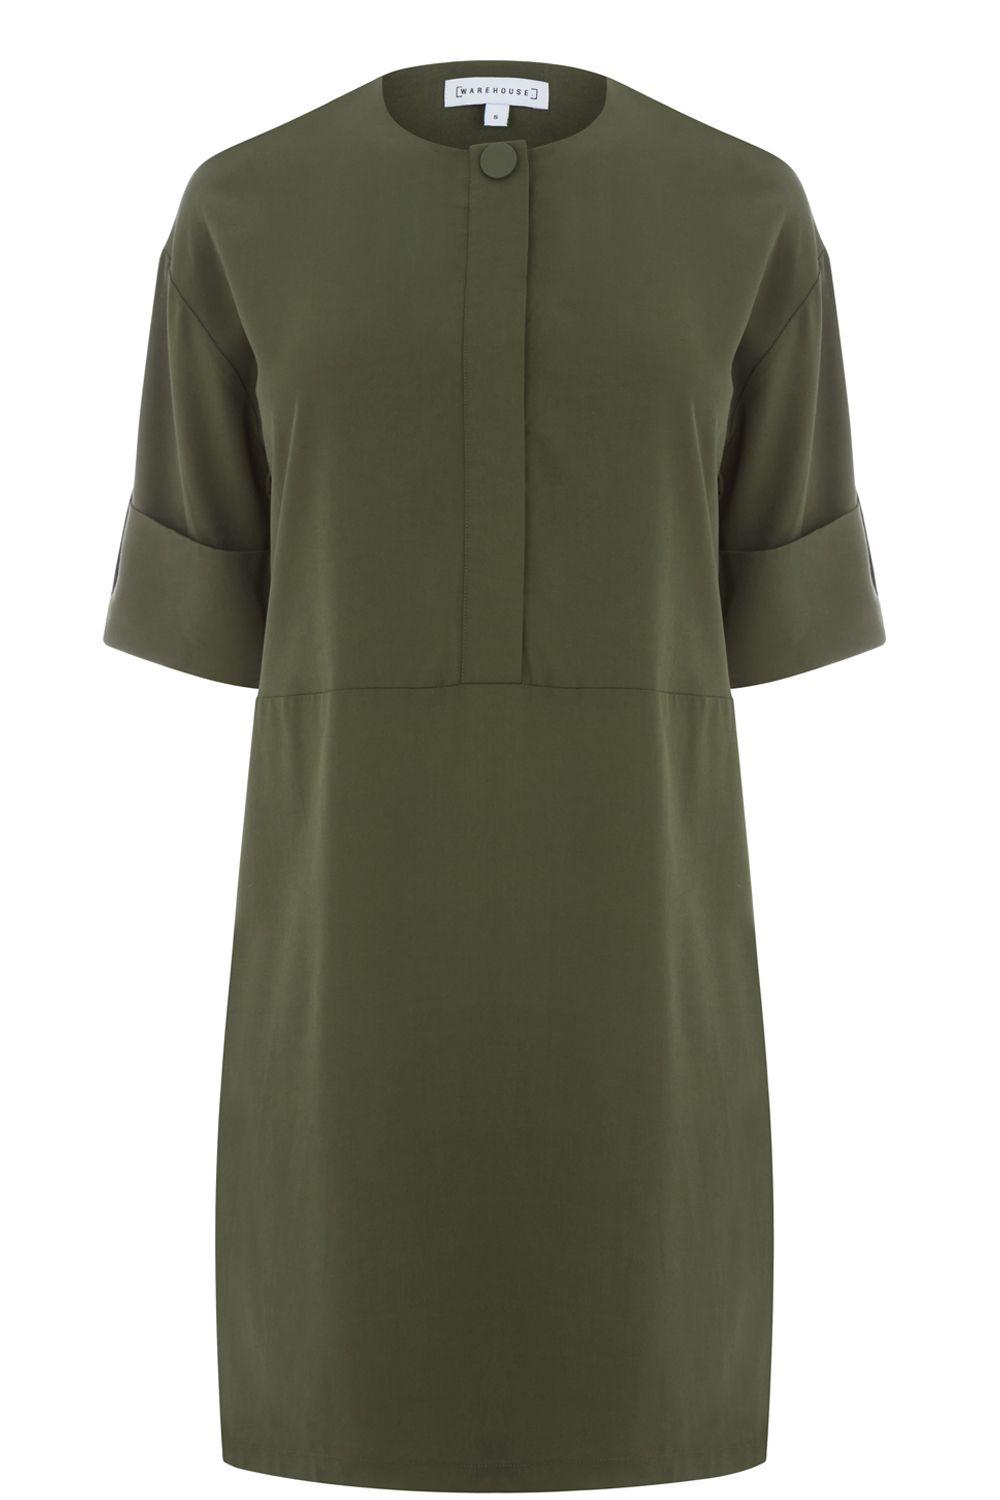 Warehouse Popper Detail Dress, Khaki